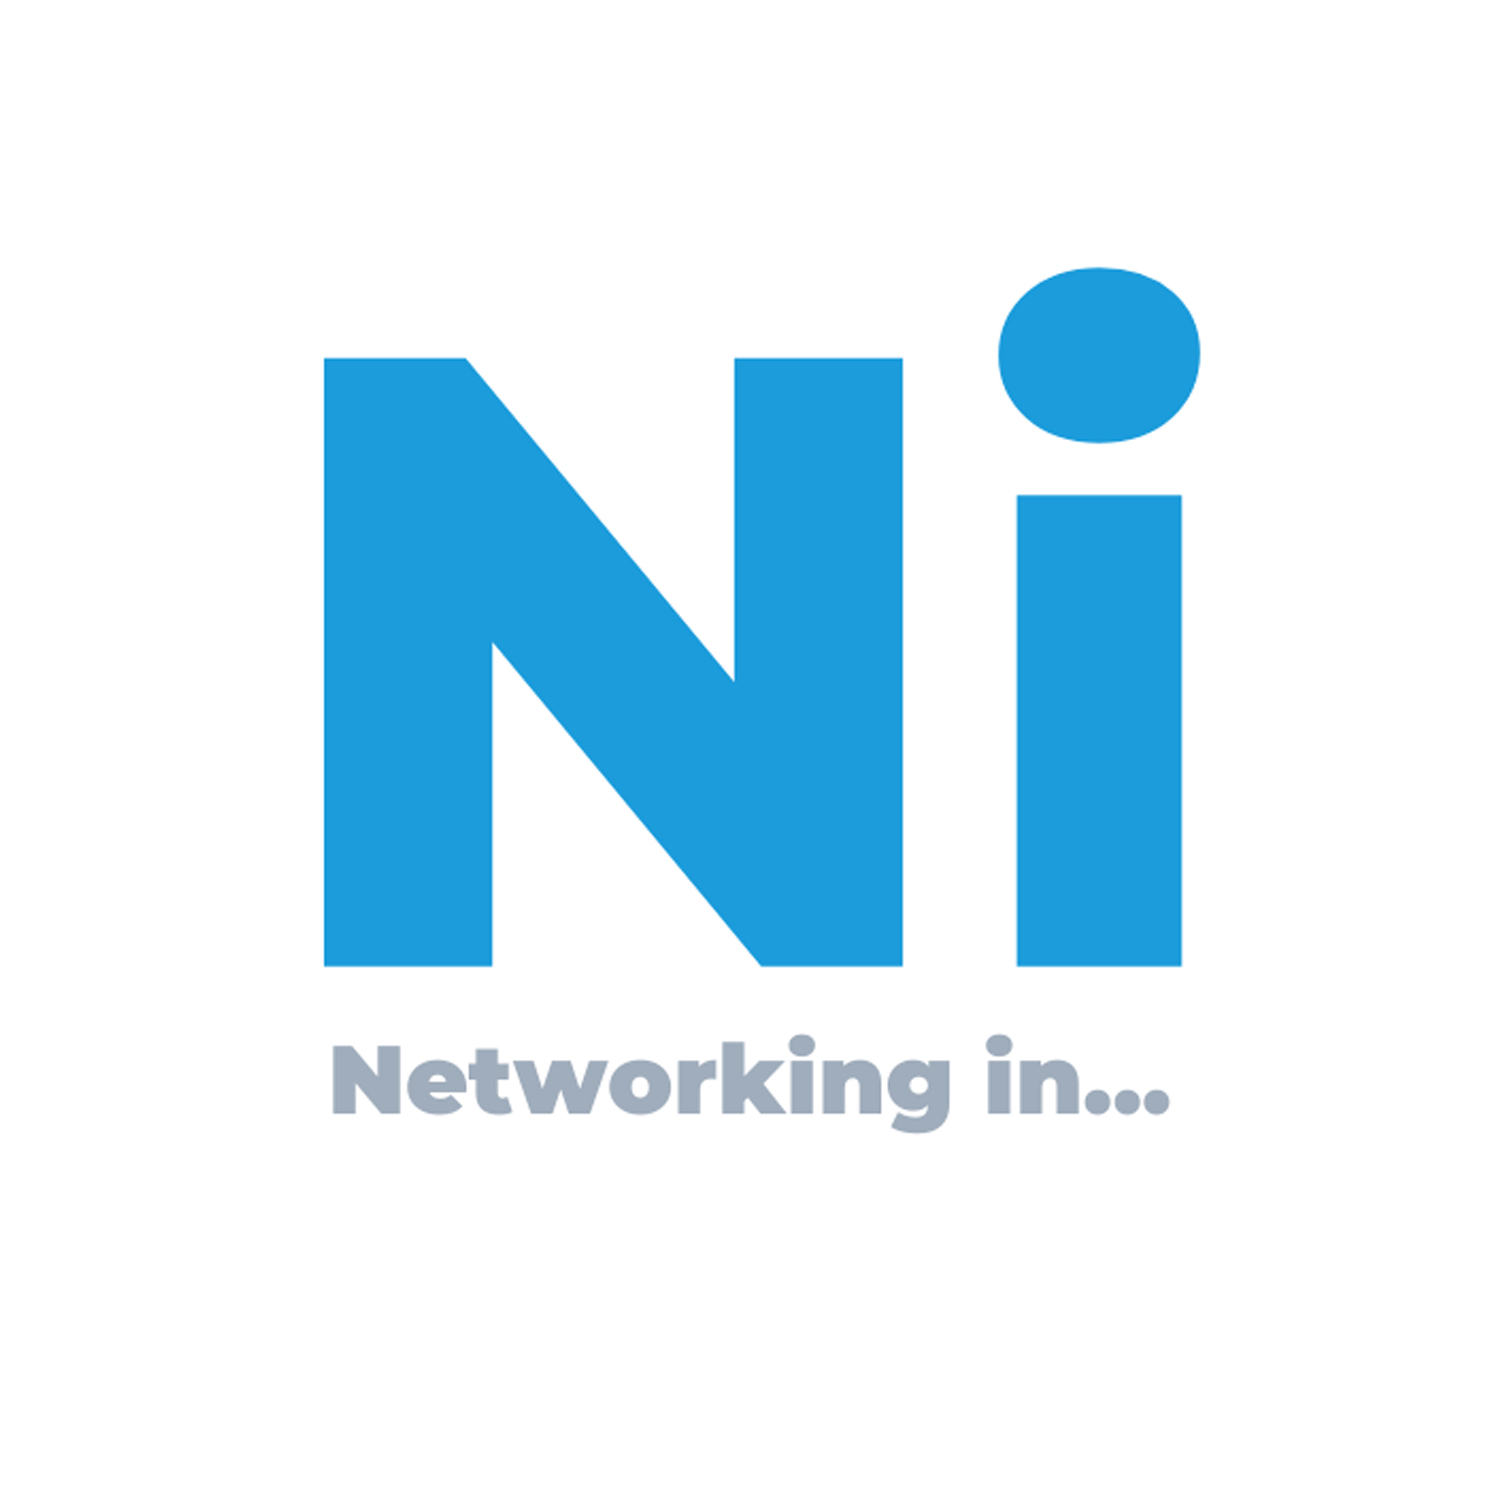 networking in, peter mols, outside ideas